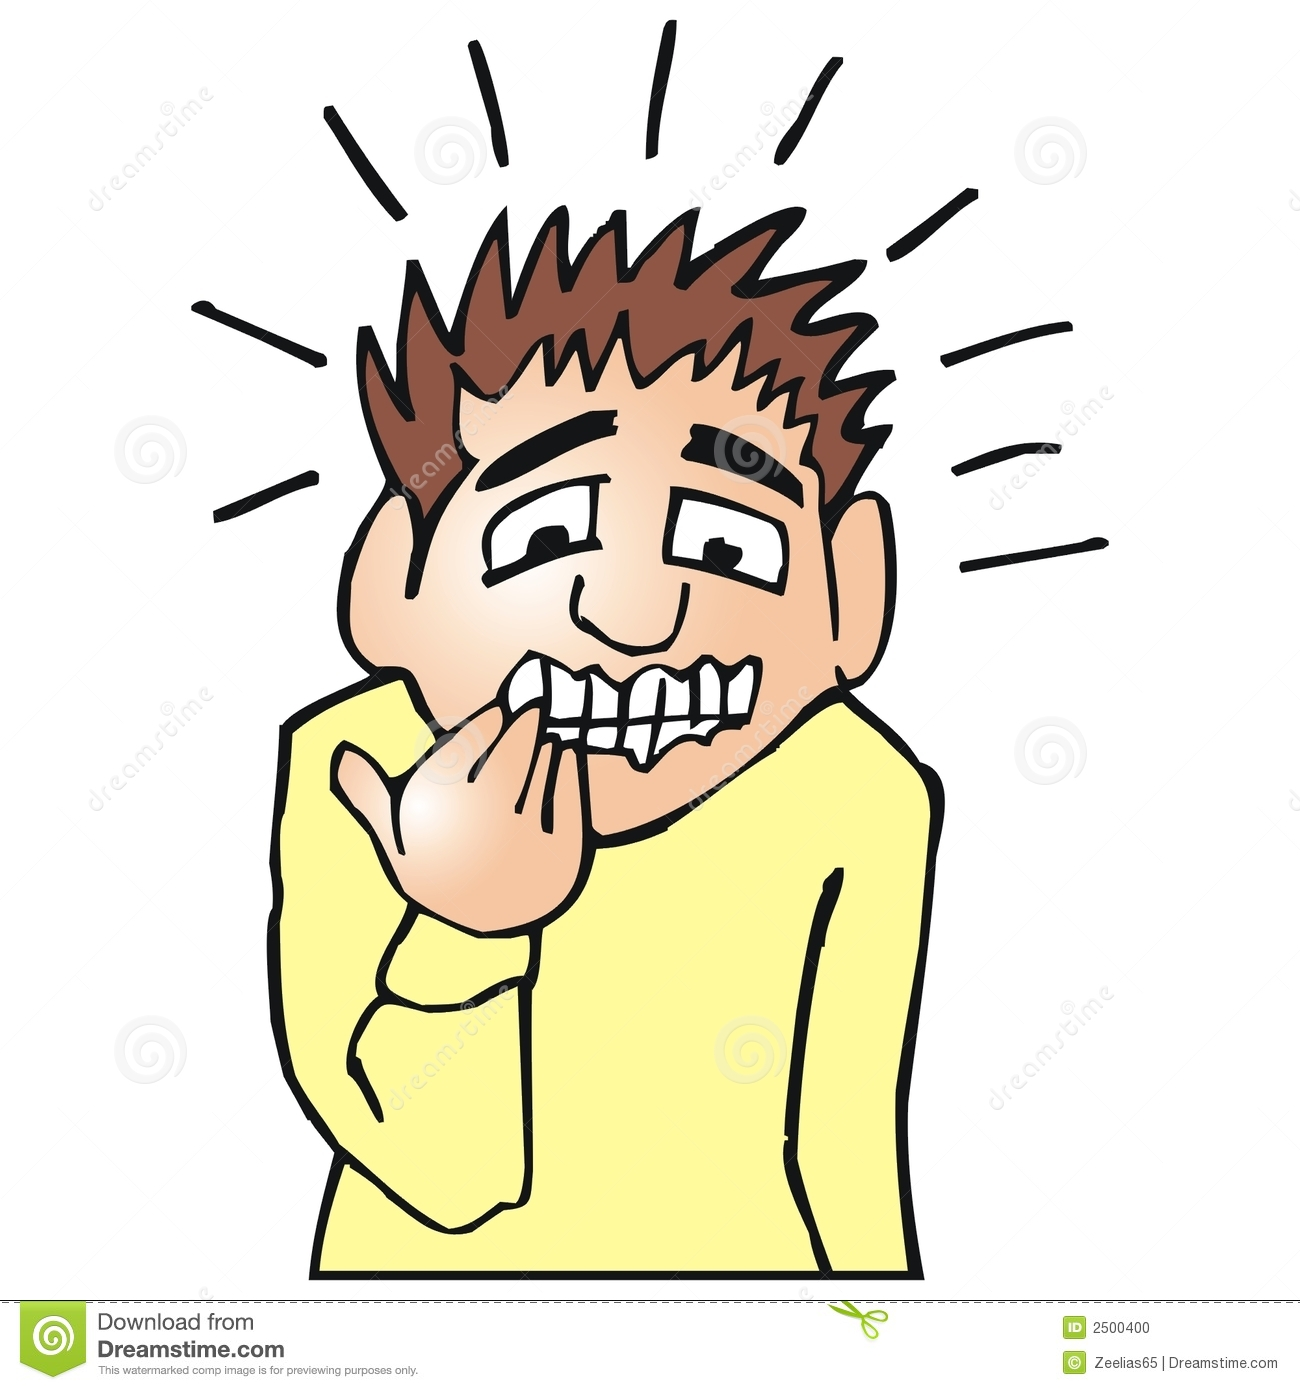 Nerves clipart sick student Nervous Kid Gallery Clipart http://www